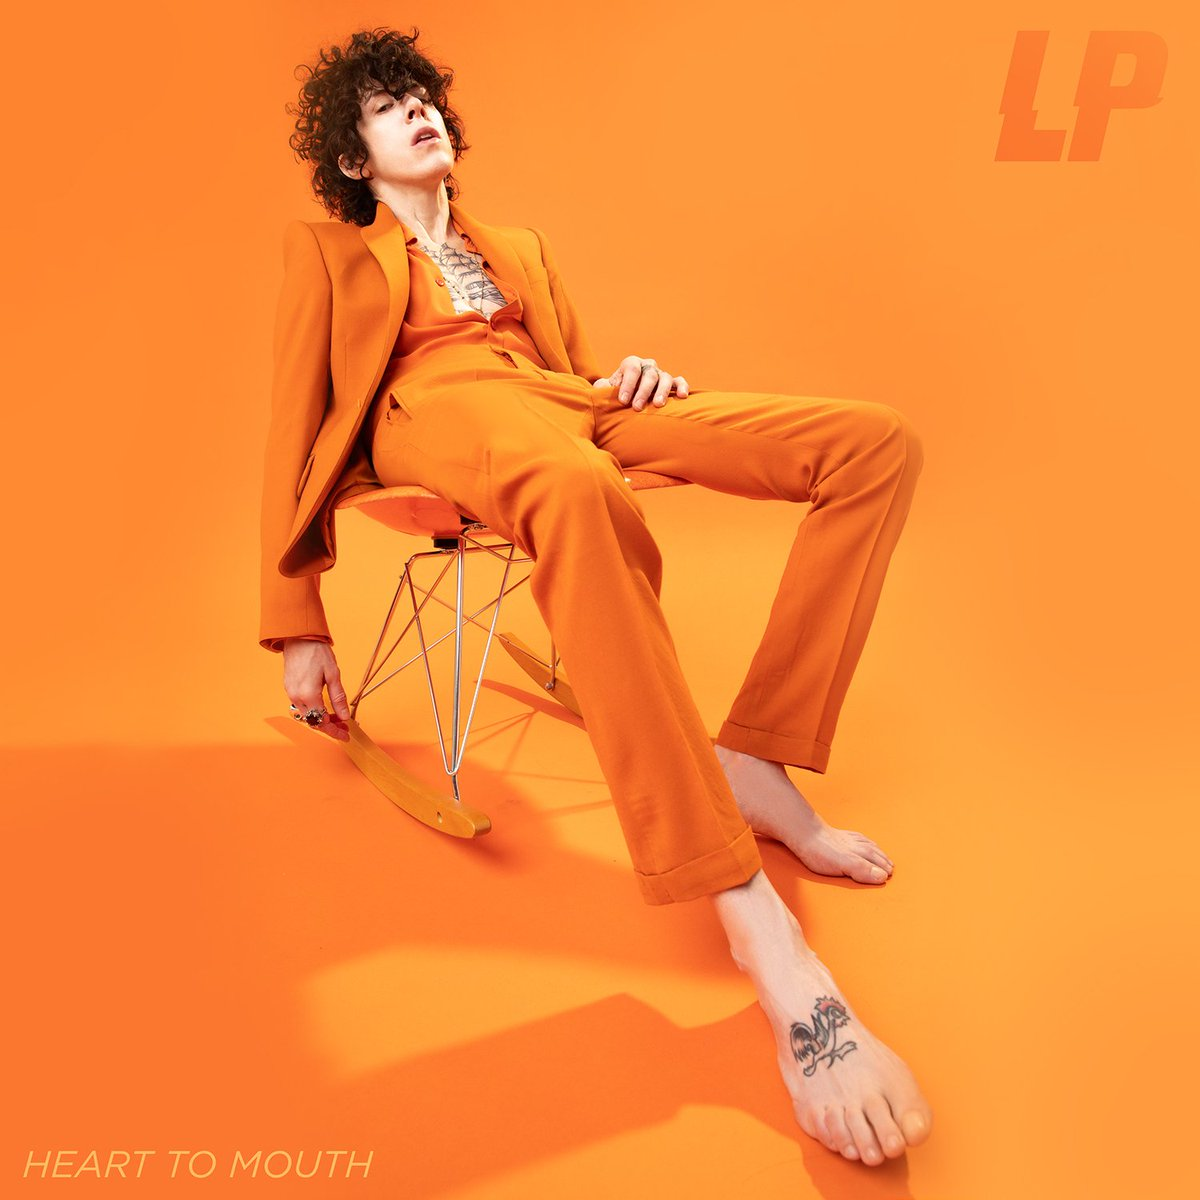 Pre-order my new album Heart To Mouth, out December 7: lp.lnk.to/HeartToMouthTW